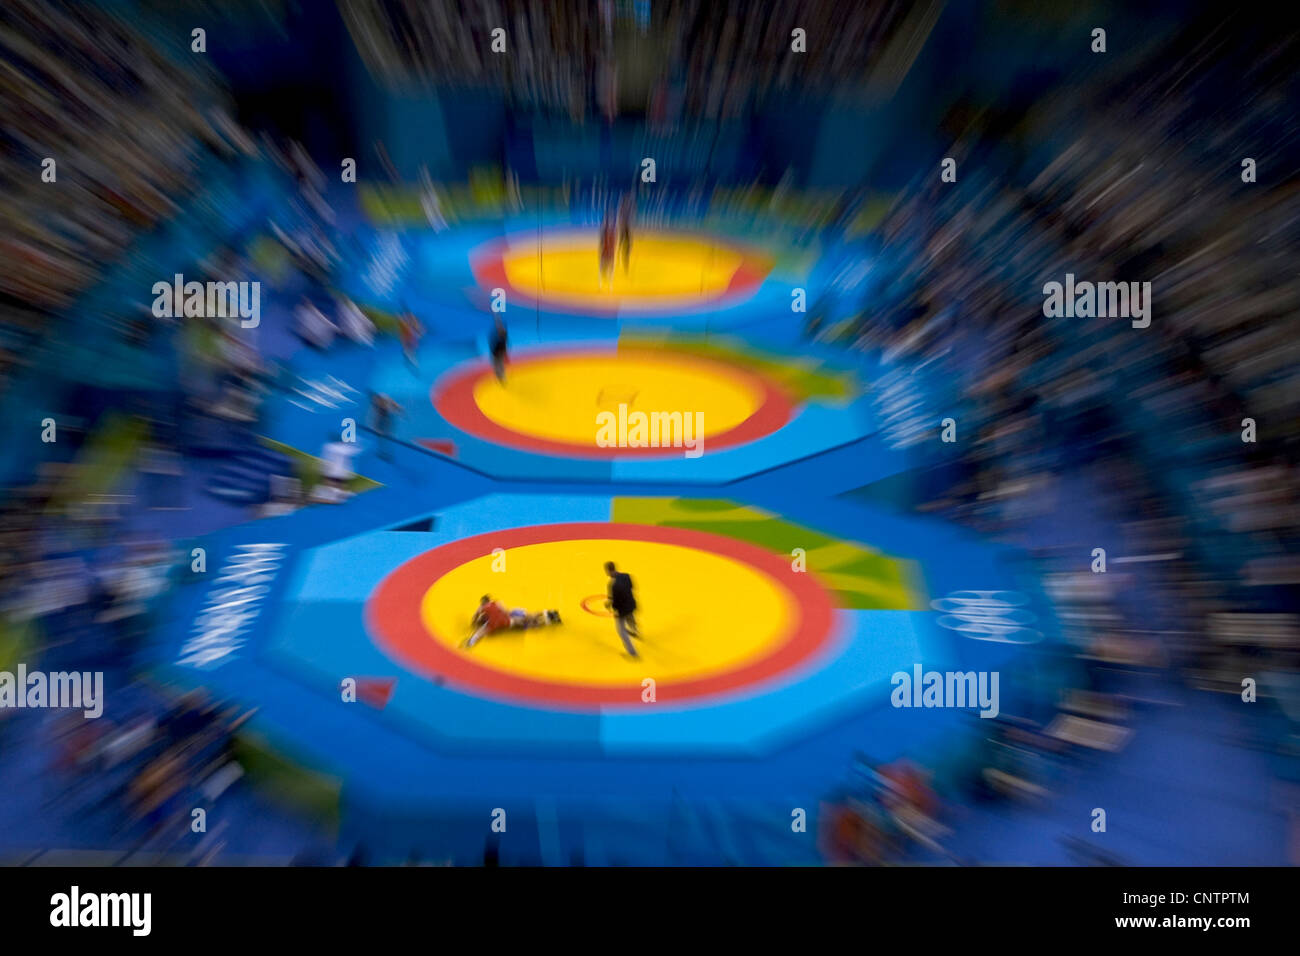 Zoom blur image of Greco Roman wrestlers in action - Stock Image